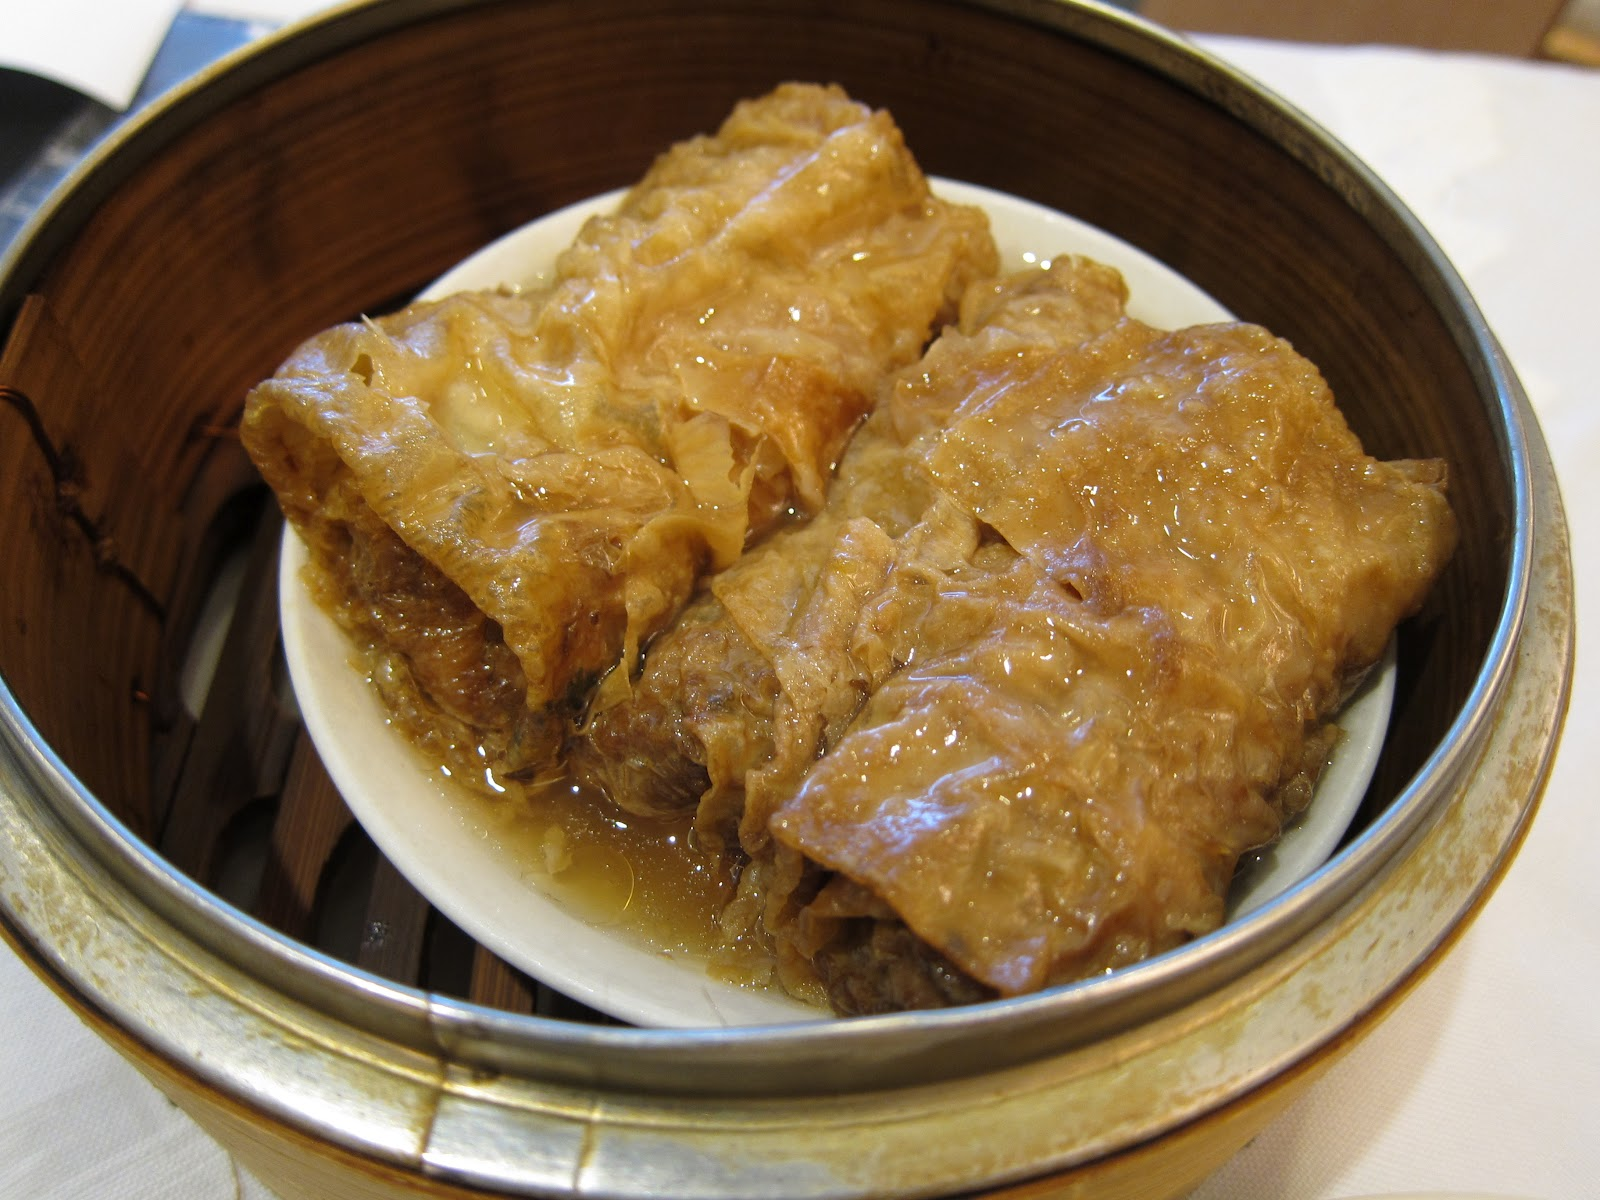 Haw Gow, or shrimp dumplings, are a dim sum staple. These were chock ...